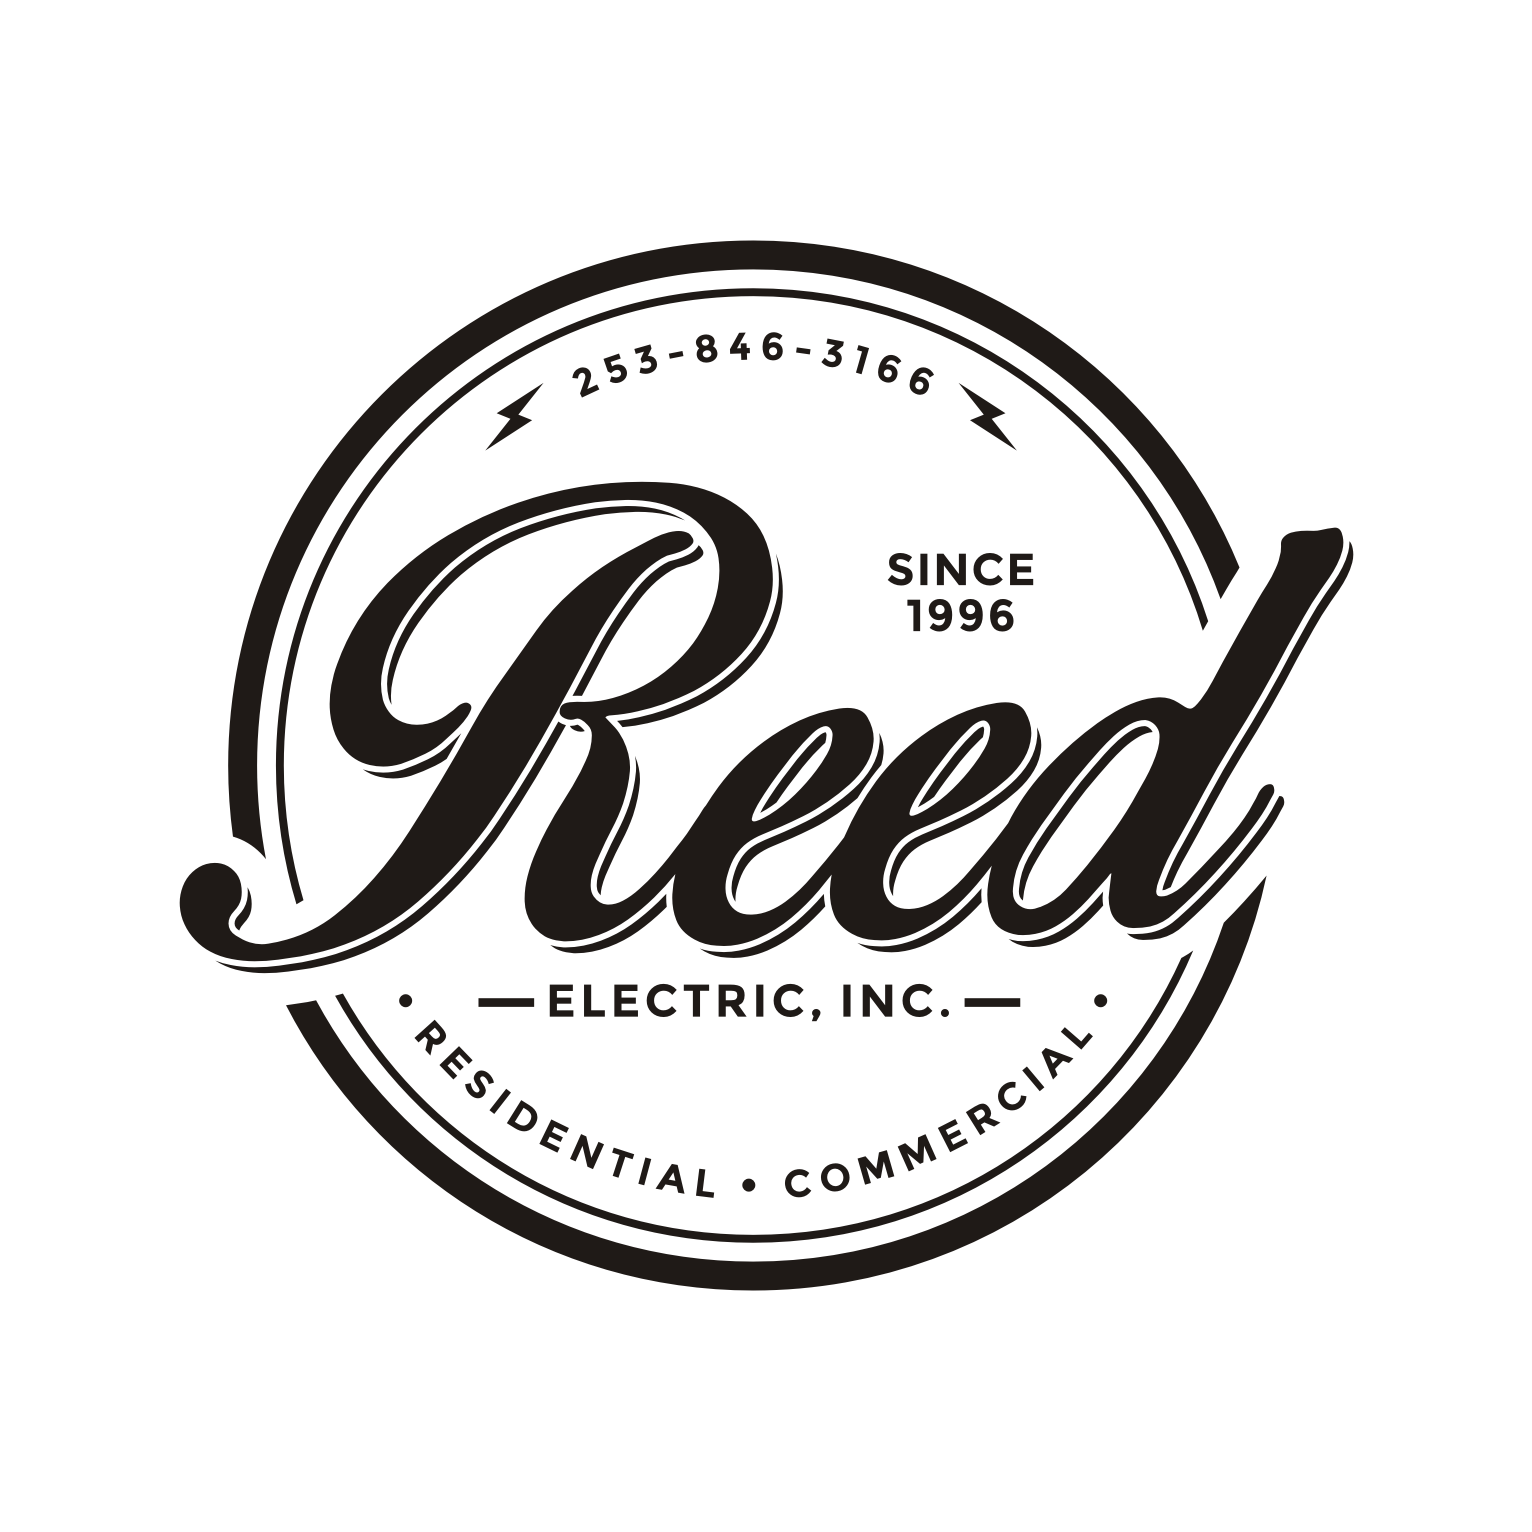 Electrical Contractor Looking to Re-Brand